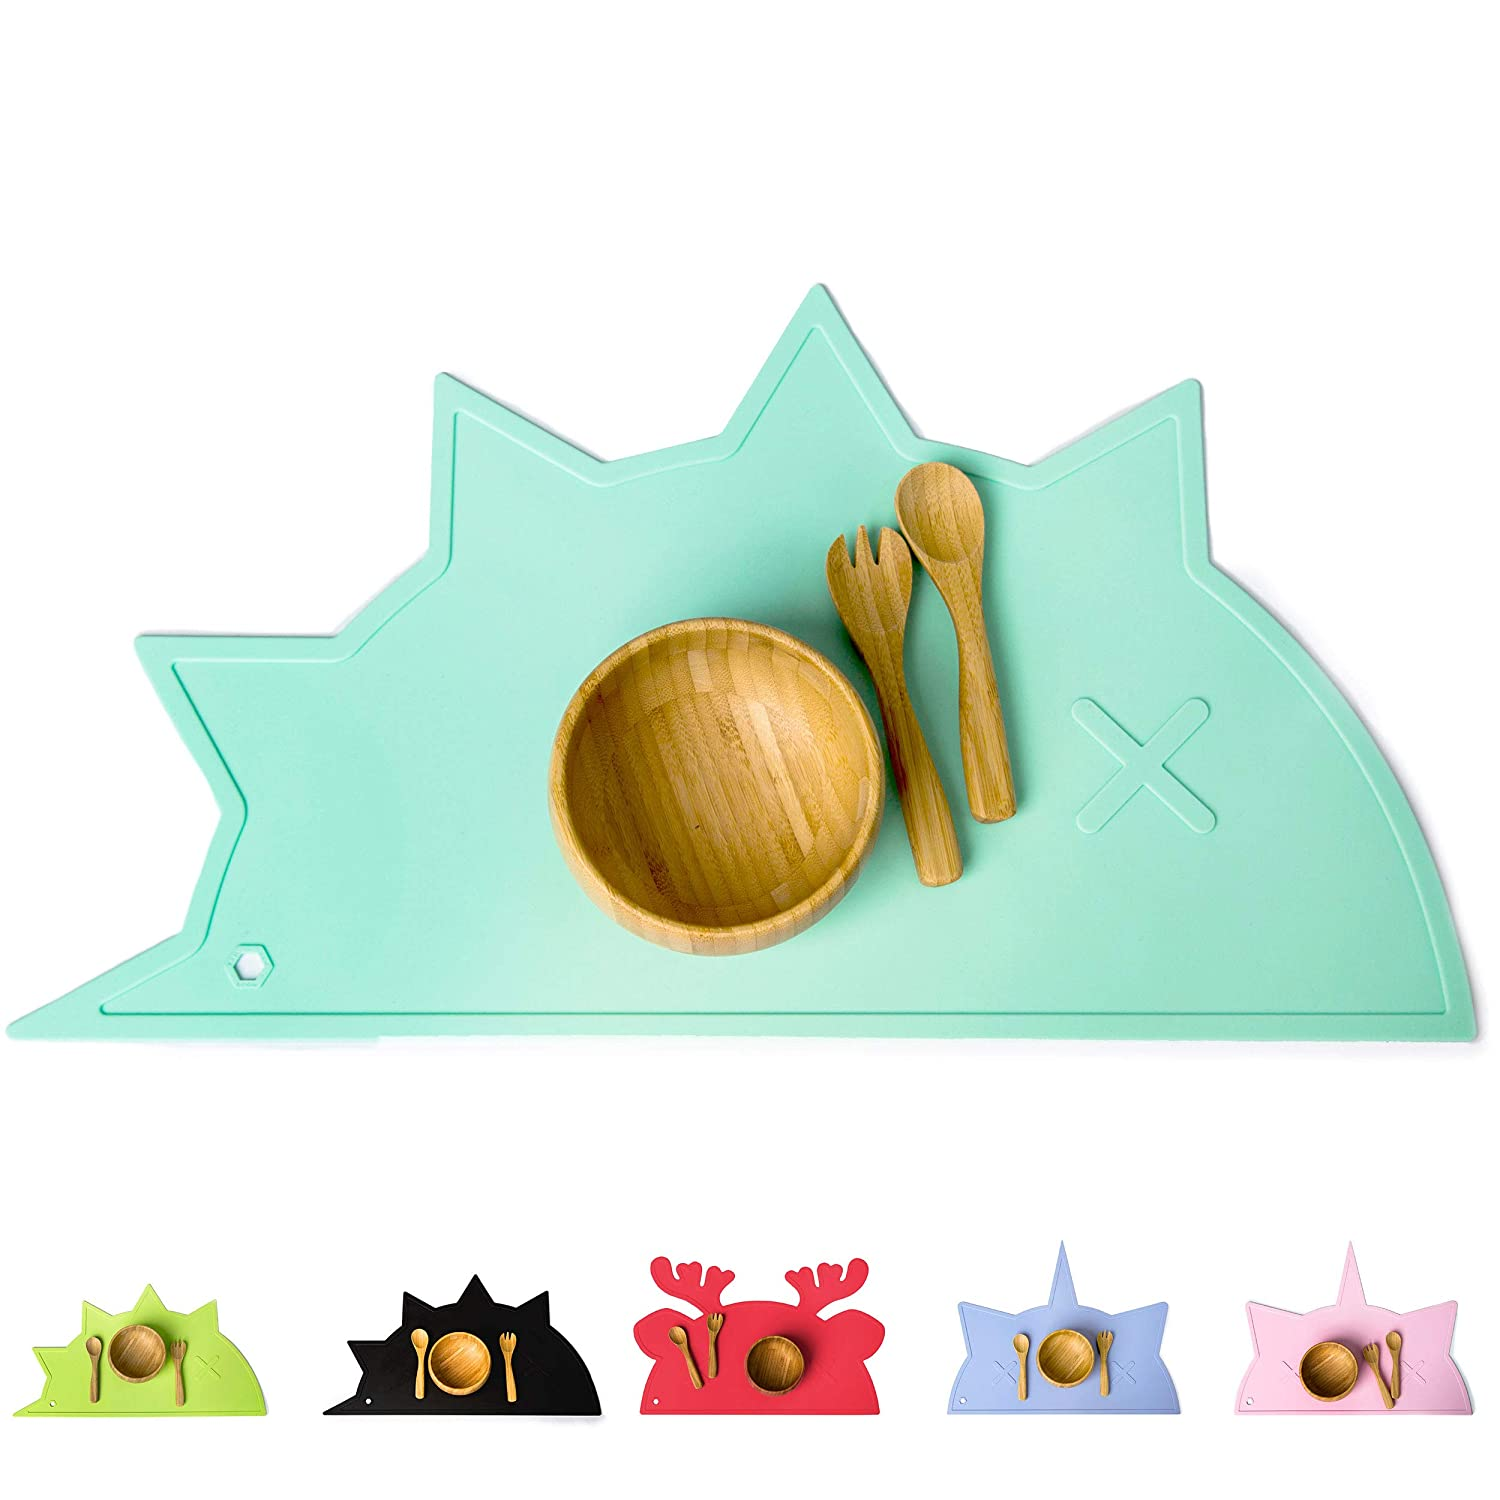 Silicone Placemat for Kids, Babies and Toddlers | Non-Slip Mats, Chemical Free & Food Grade Baby Mat | Portable Placemats | Raised Edges Prevent Spills | BamBamBoom Hedgehog-Dino Mint